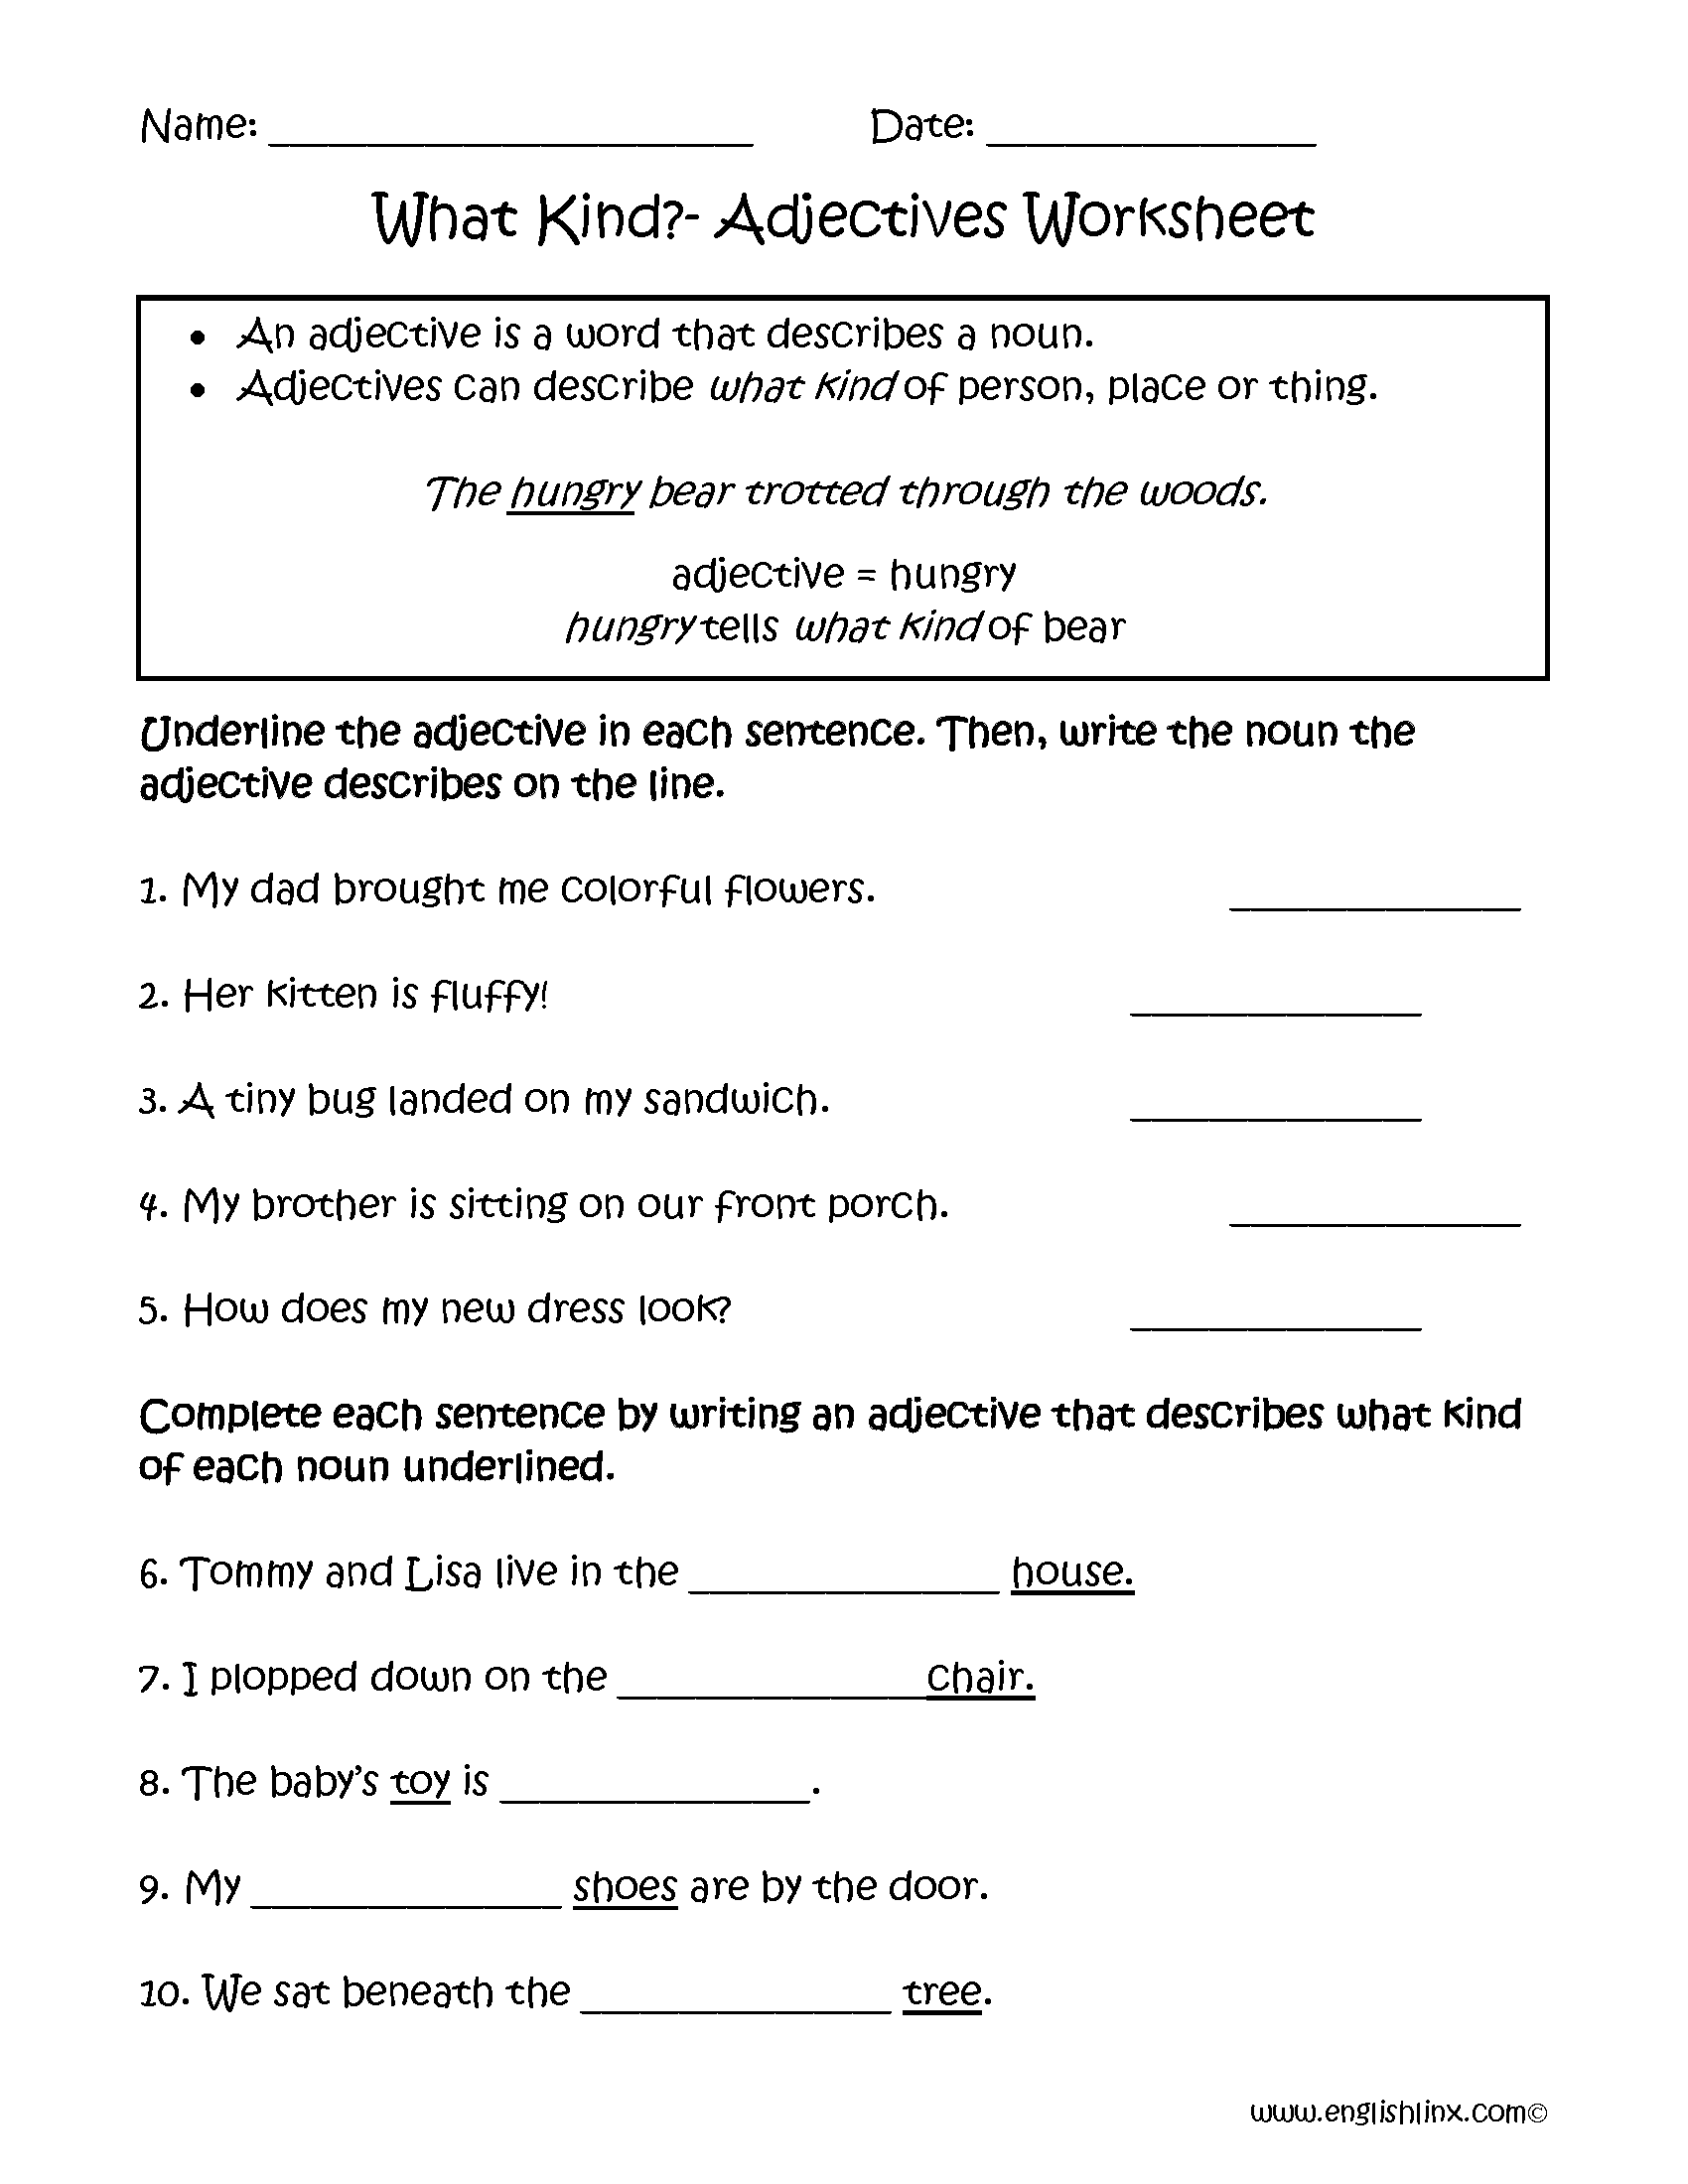 Worksheets Adjectives Worksheets adjectives worksheets regular worksheets